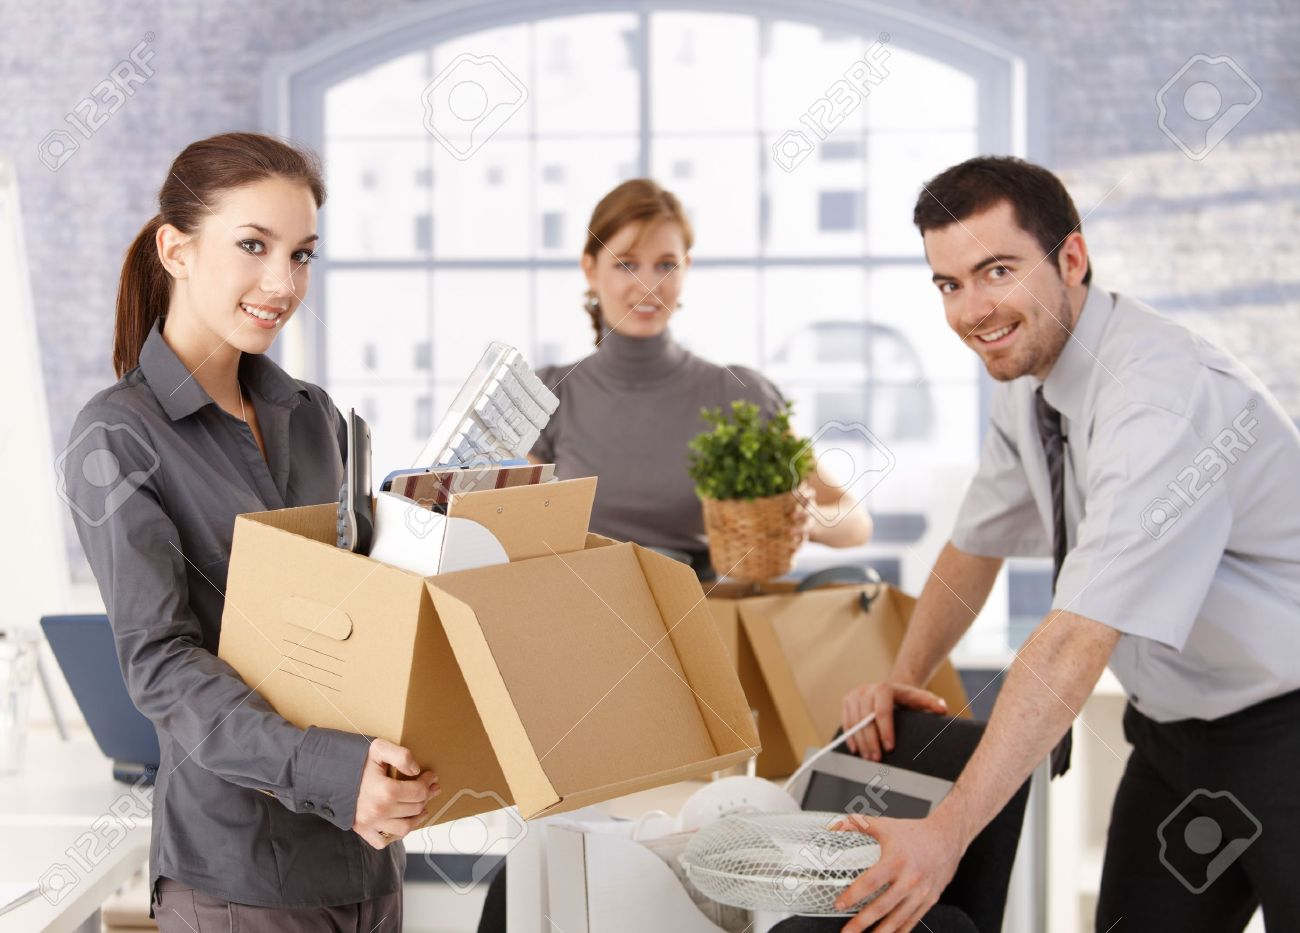 Young office workers moving office, unpacking boxes, smiling. Stock Photo - 8551996